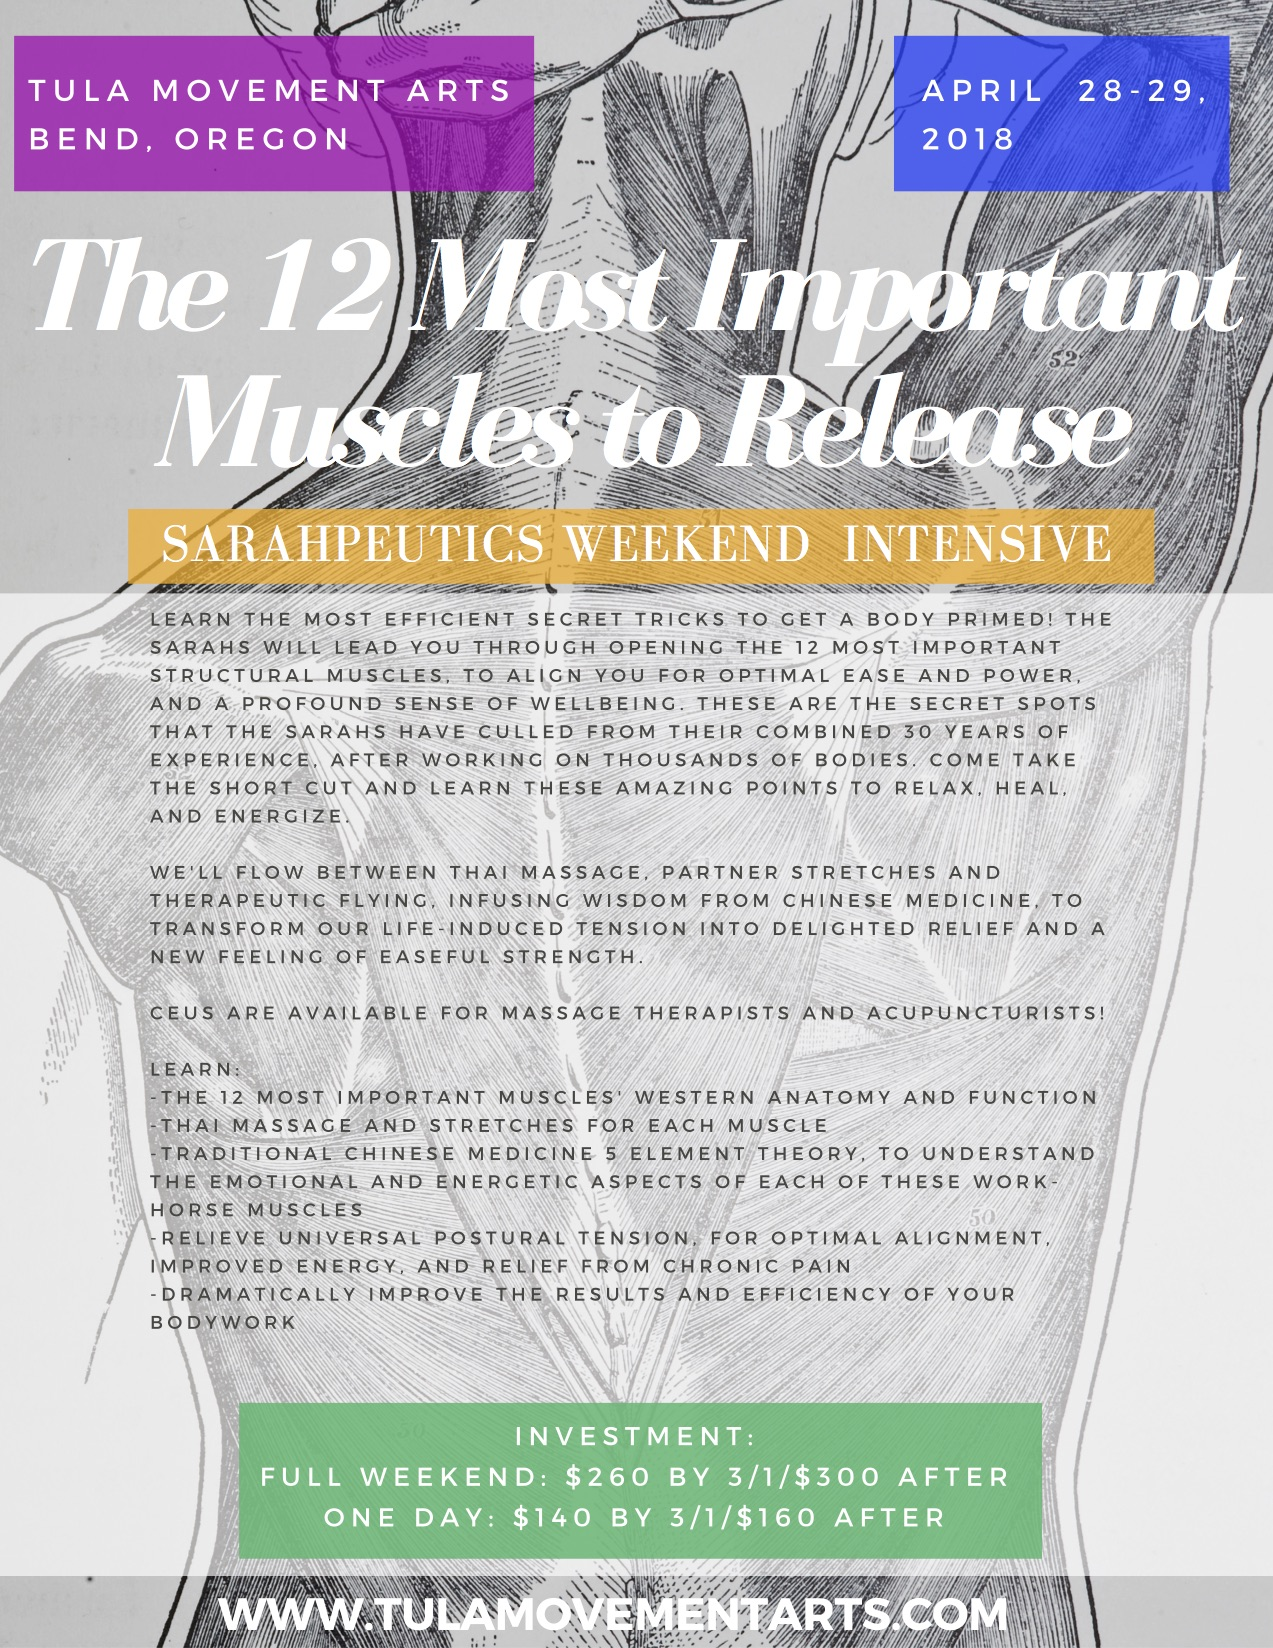 Get Optimal Bend 12 Most Important Muscles To Release Sarahpeutics